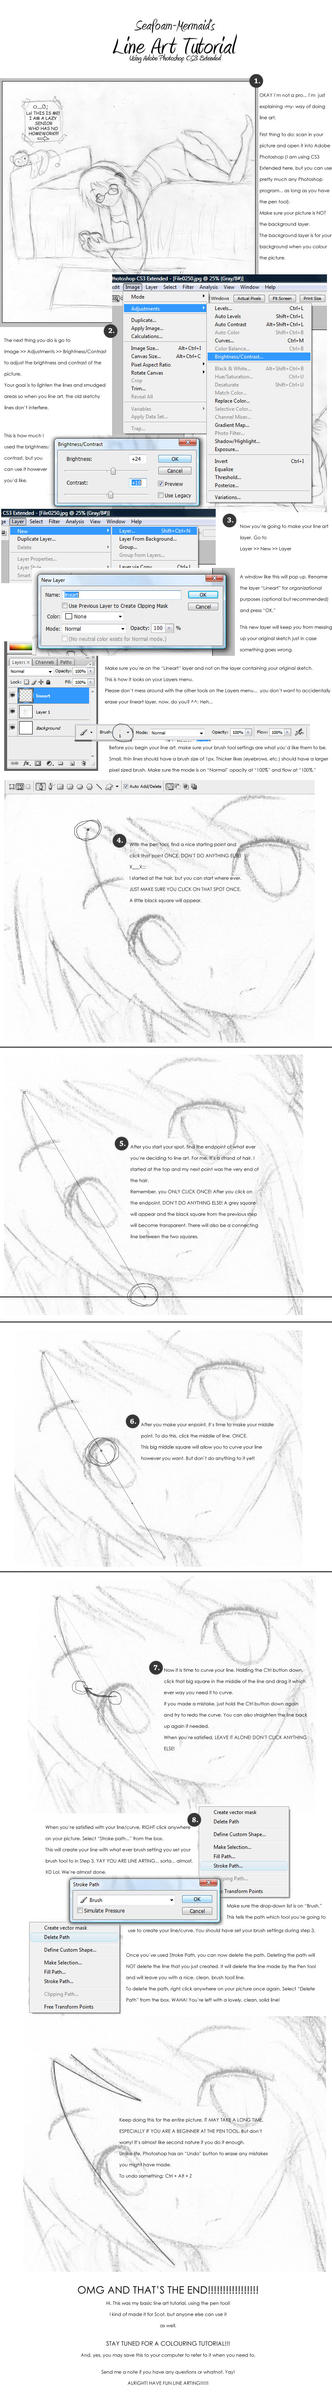 Line Art Tutorial : Line art tutorial ps cs by jennywheat on deviantart